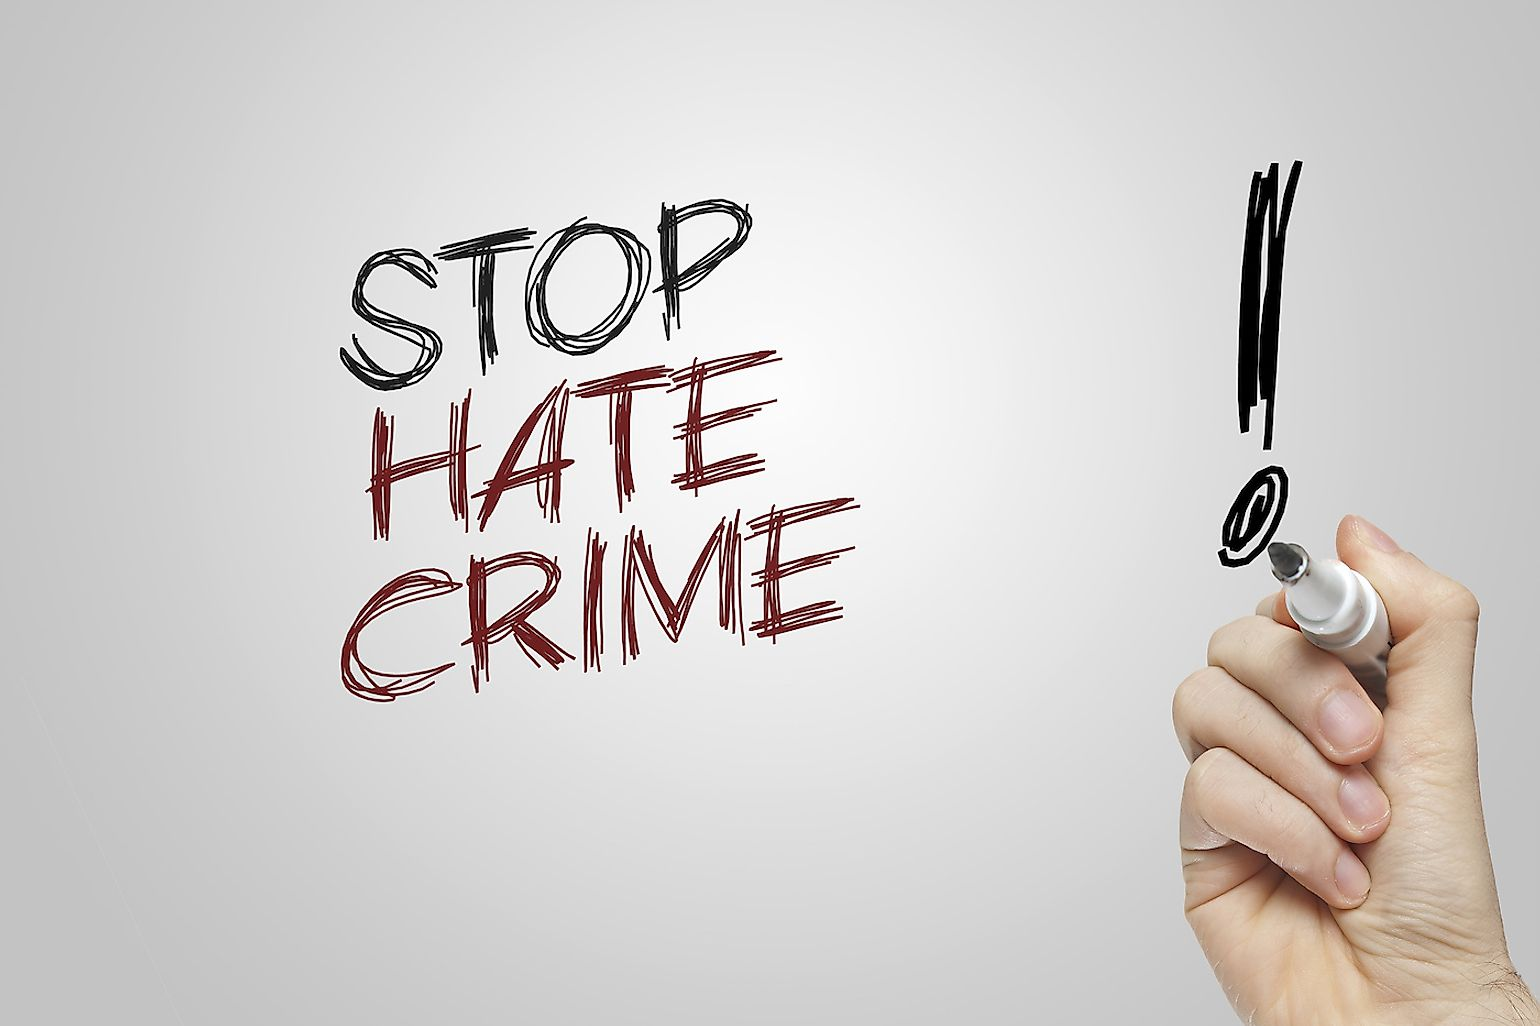 Hate crimes need to be dealt with strongly and prompt actions must be taken against perpetrators of such crimes.